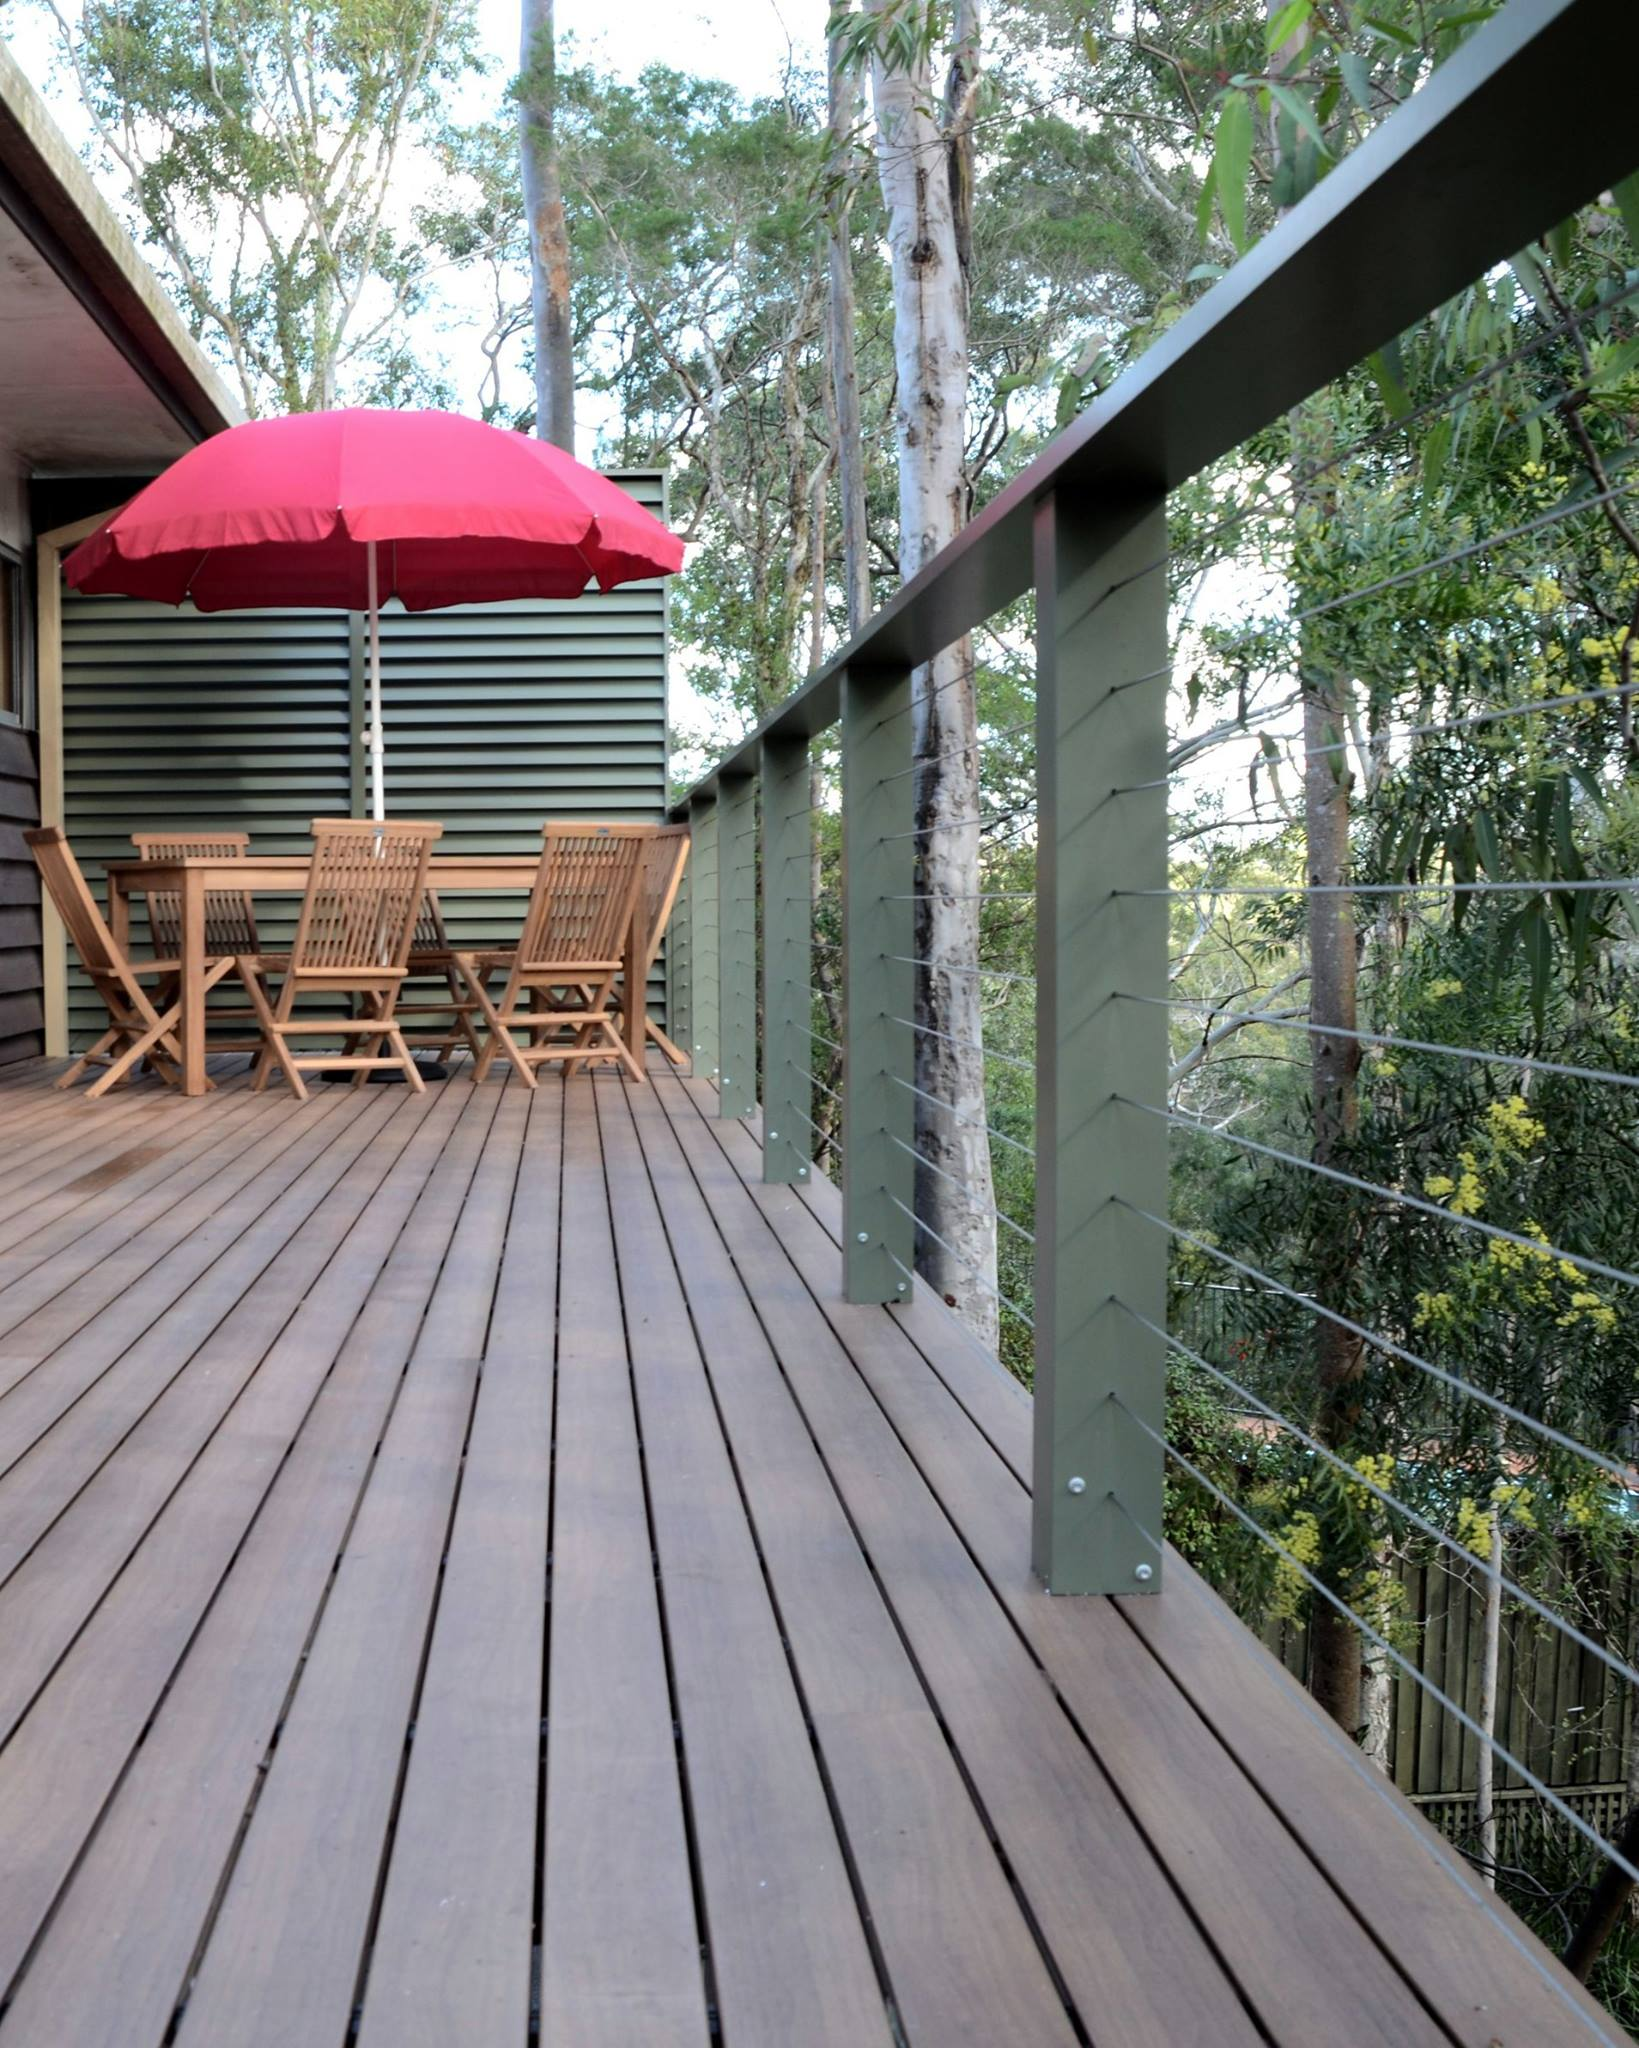 Boxspan deck frame and aluminium decking boards coated to appear like timber in a bushfire flame zone